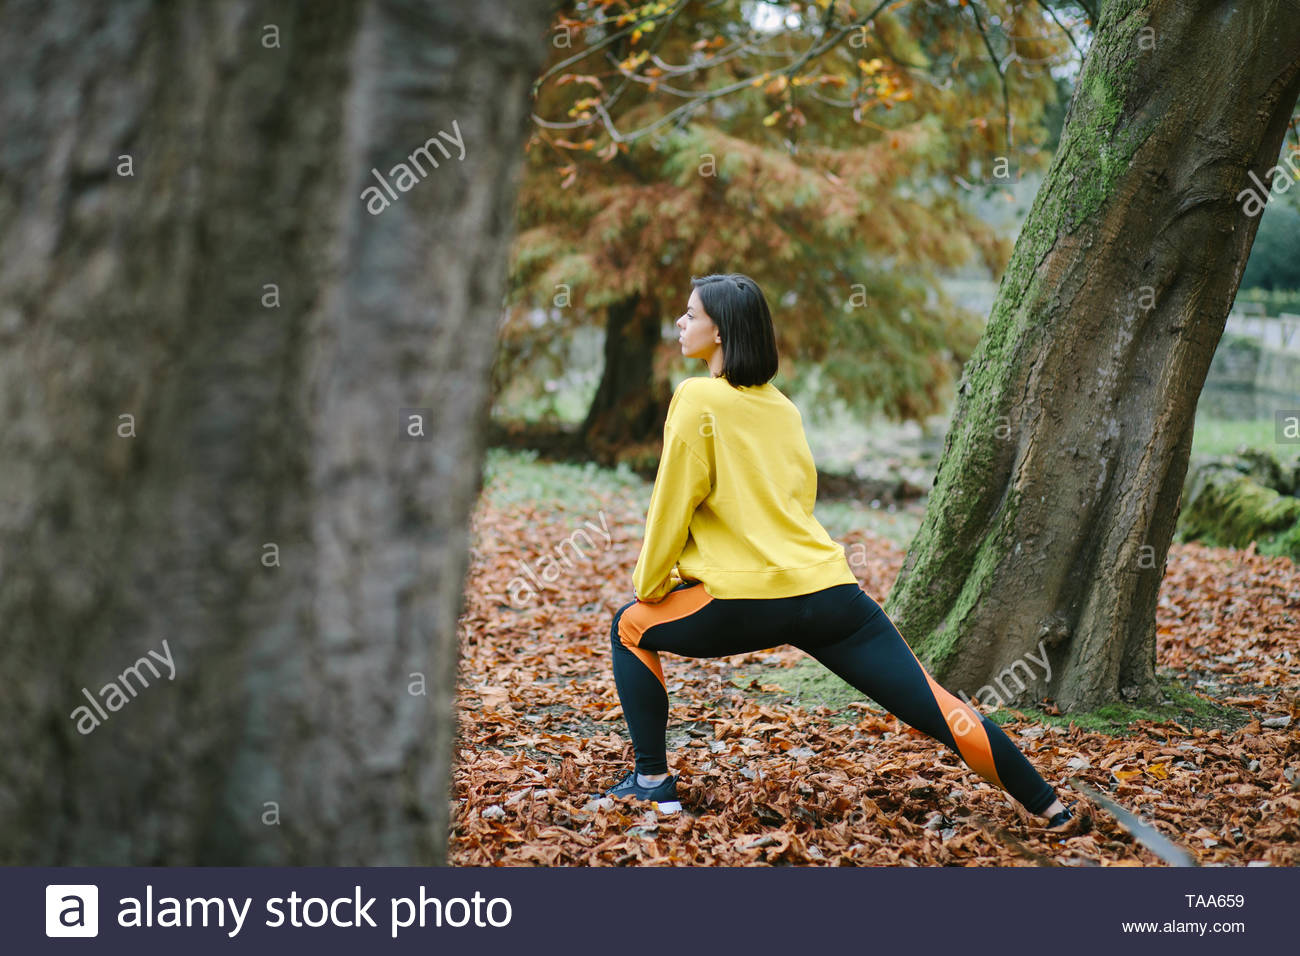 Female athlete stretching at city park in autumn. Sporty woman exercising outdoor. - Stock Image